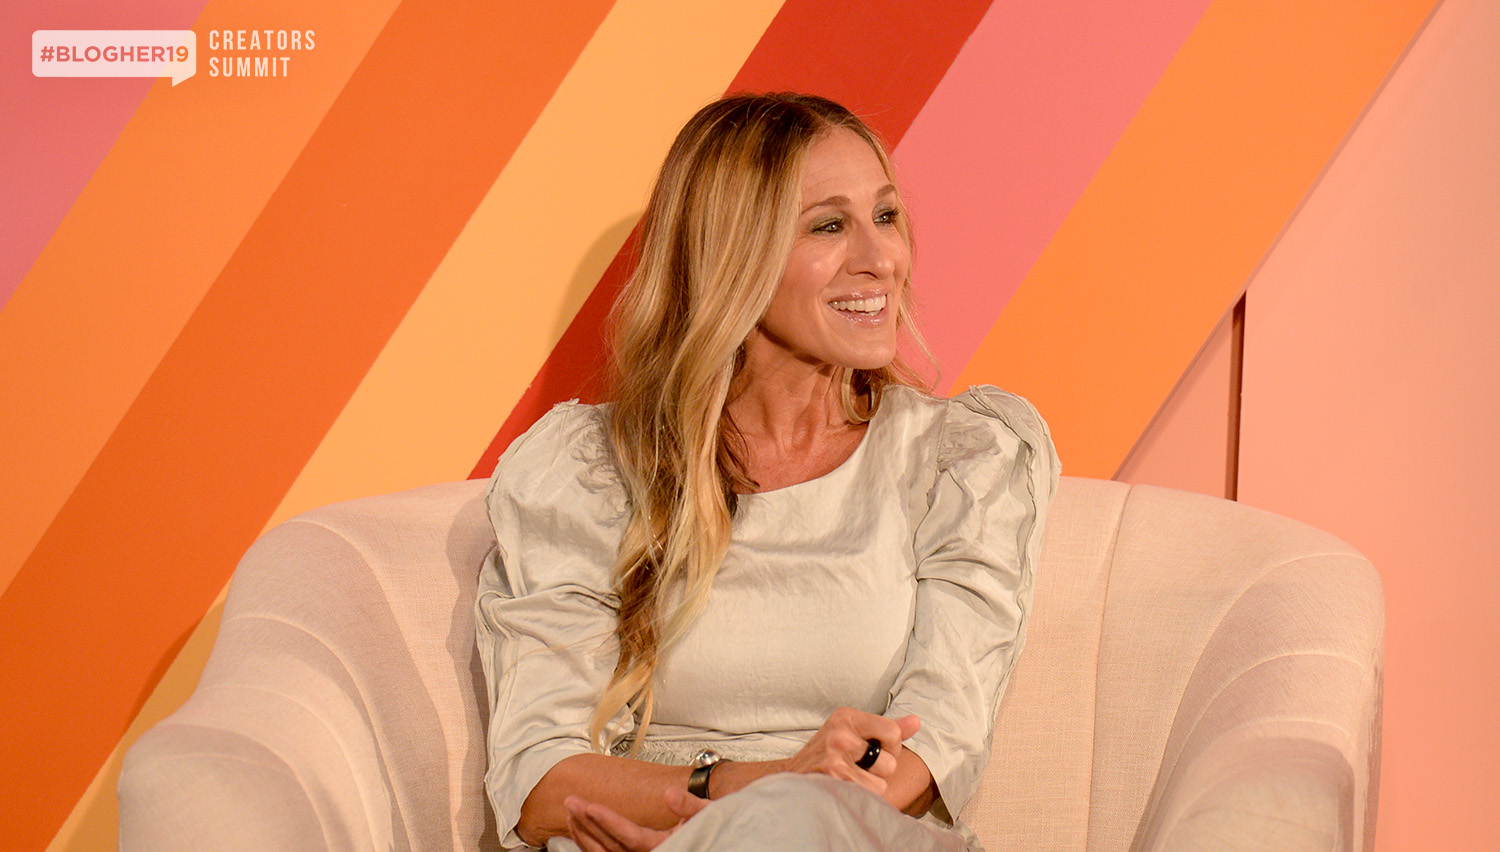 """A business is a business. People want to be successful. Women Entrepreneurs are successful."" - Sarah Jessica Parker joined us at #BlogHer19 Creators Summit and offered advice to female entrepreneurs on listening, learning, and summoning the courage to reach out and ask for what you want."